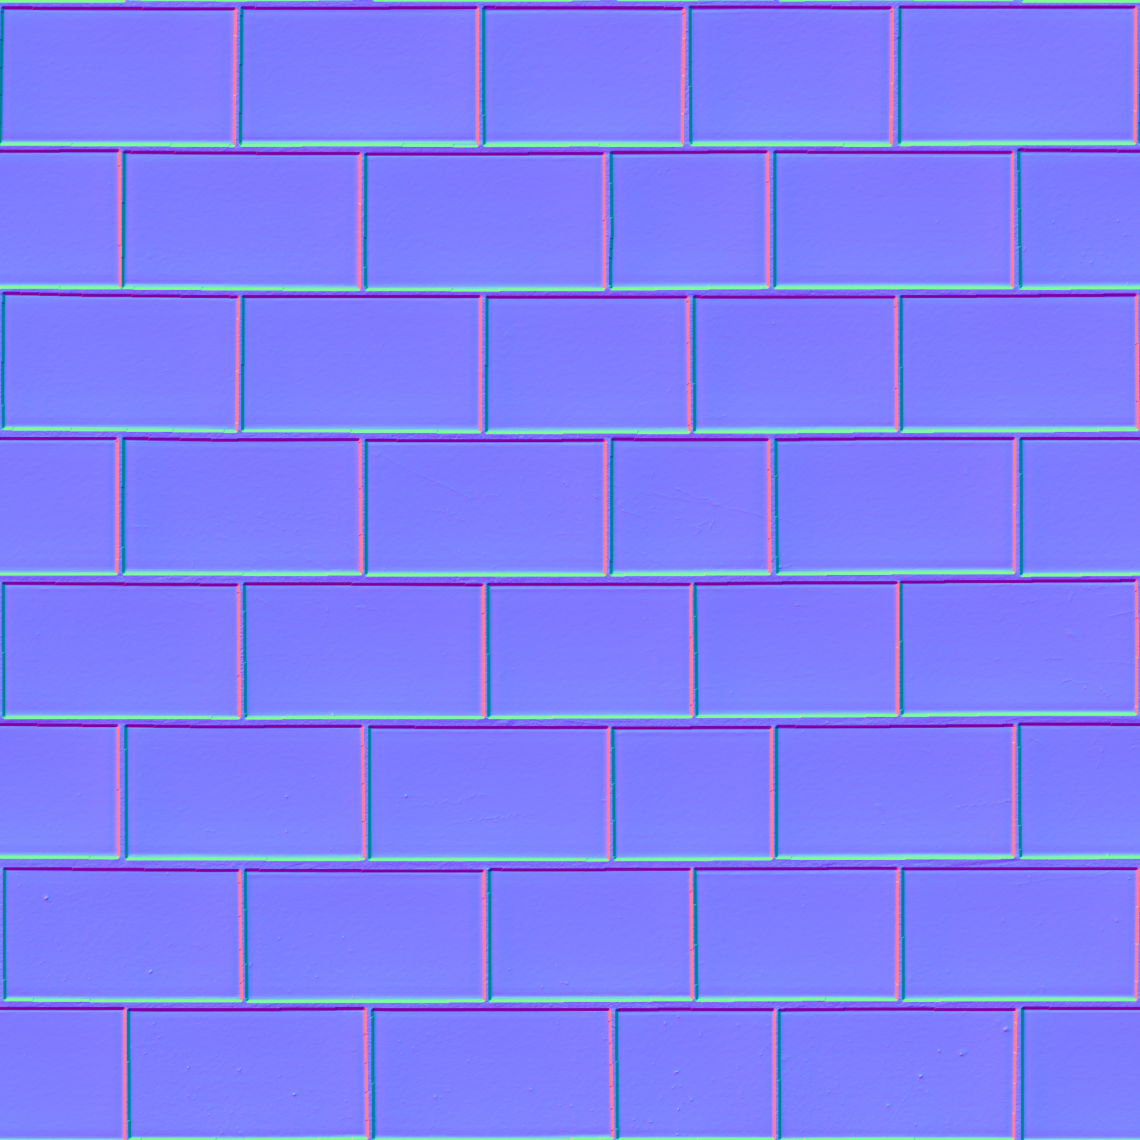 Simple-Tiles-04-Normal